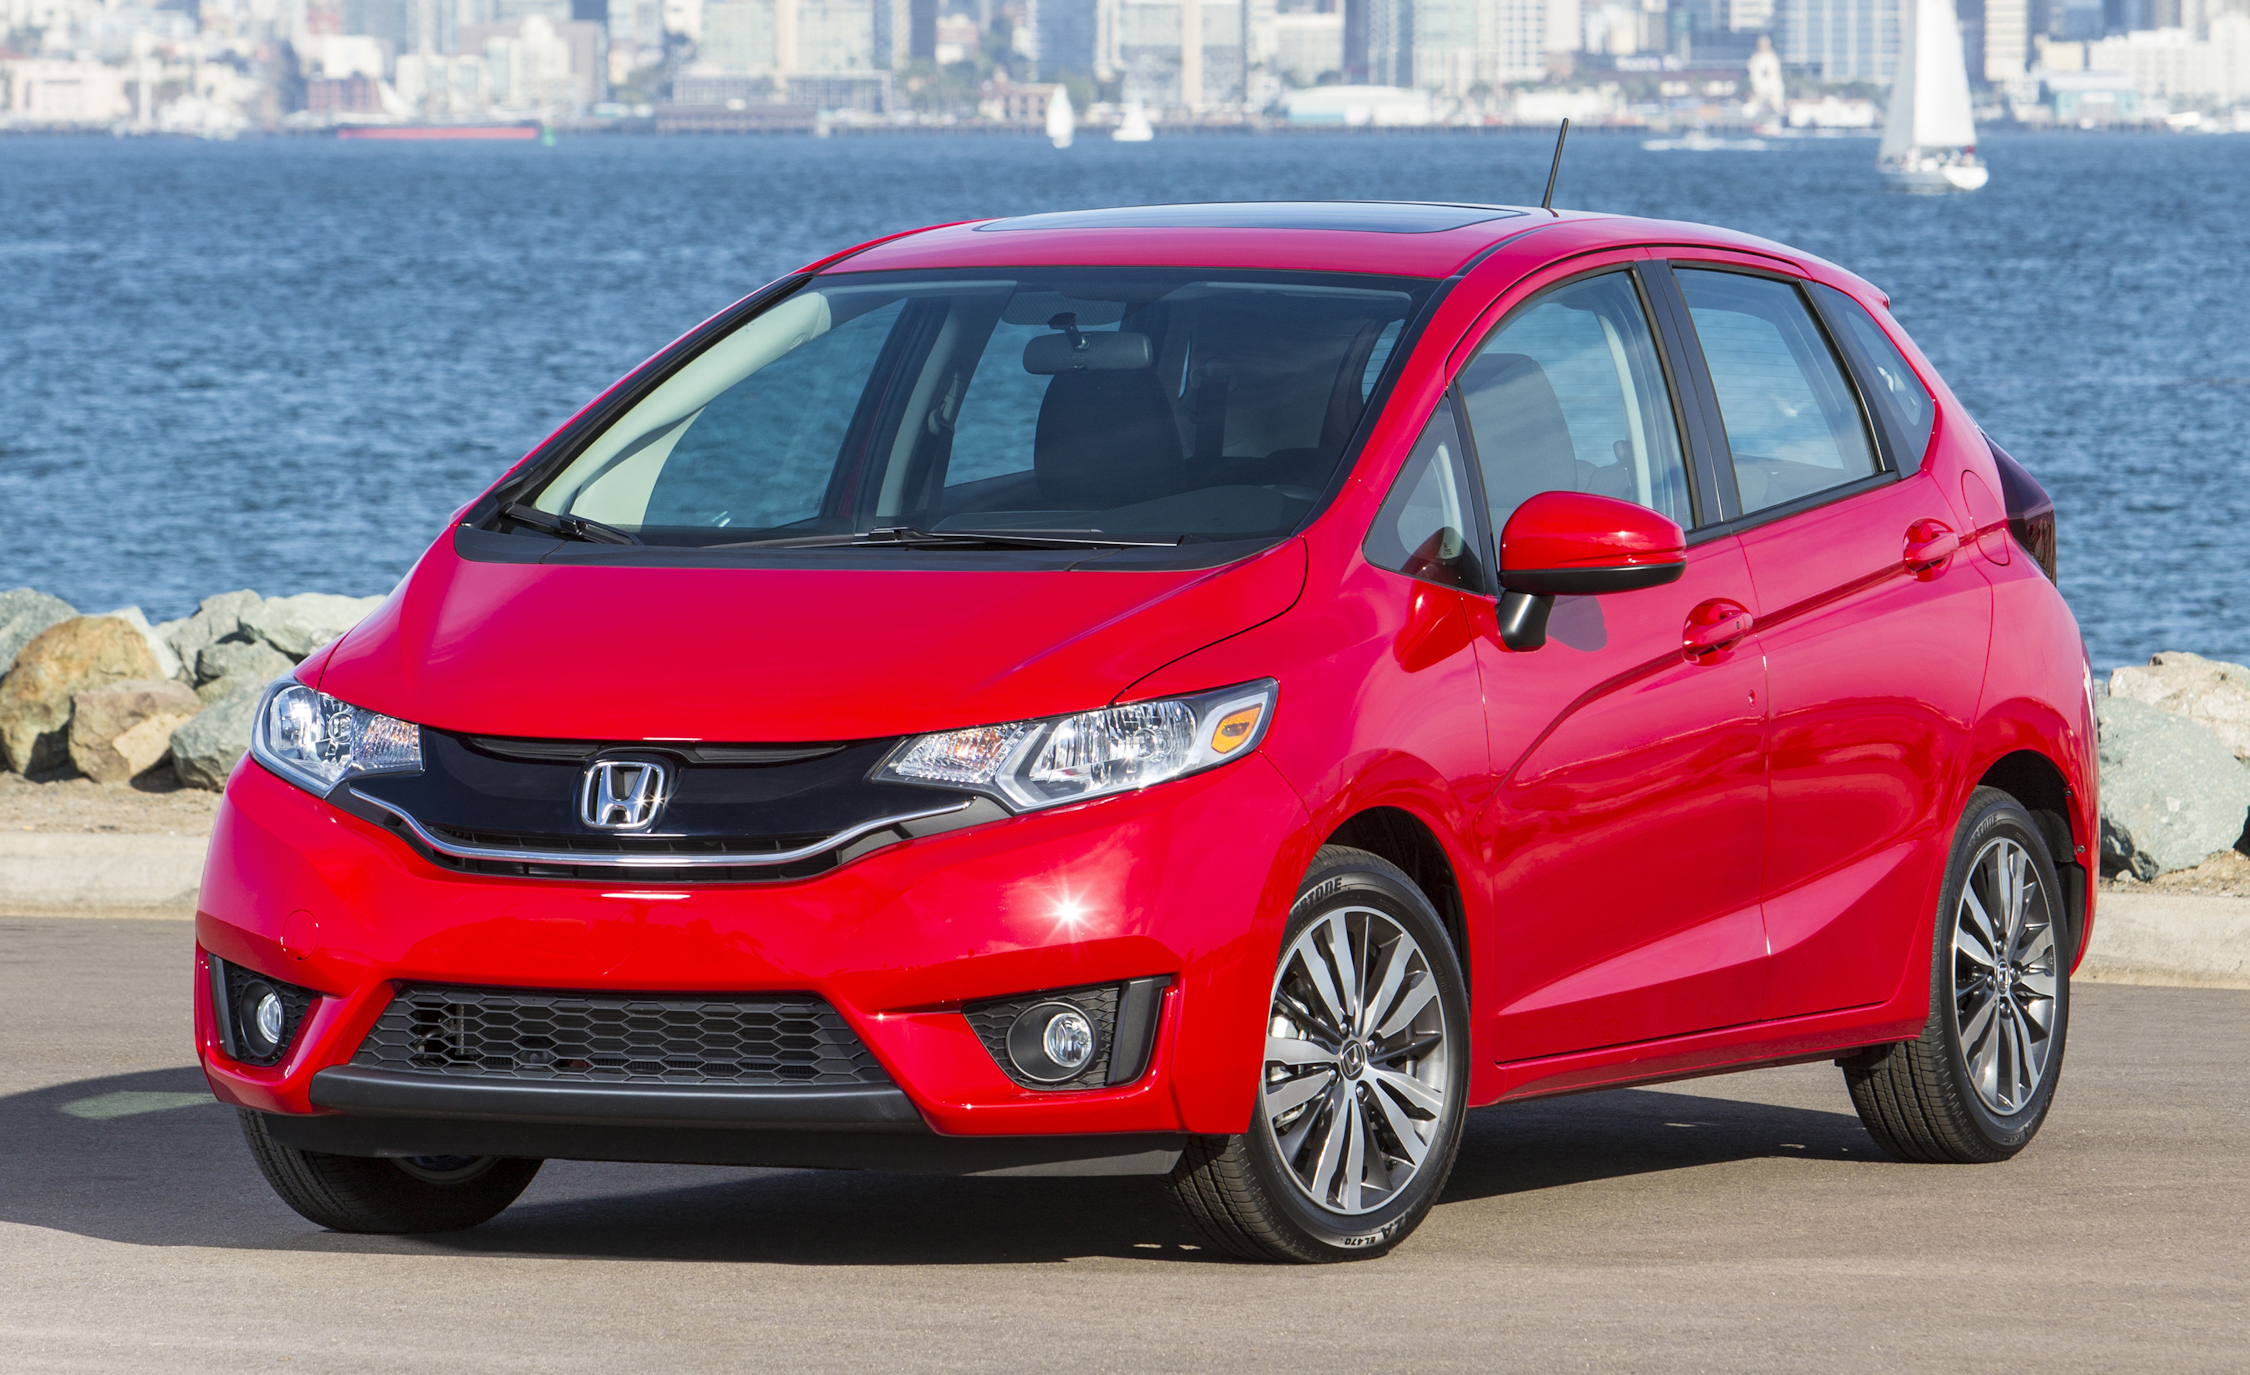 2015 Honda Fit (View 12 of 16)